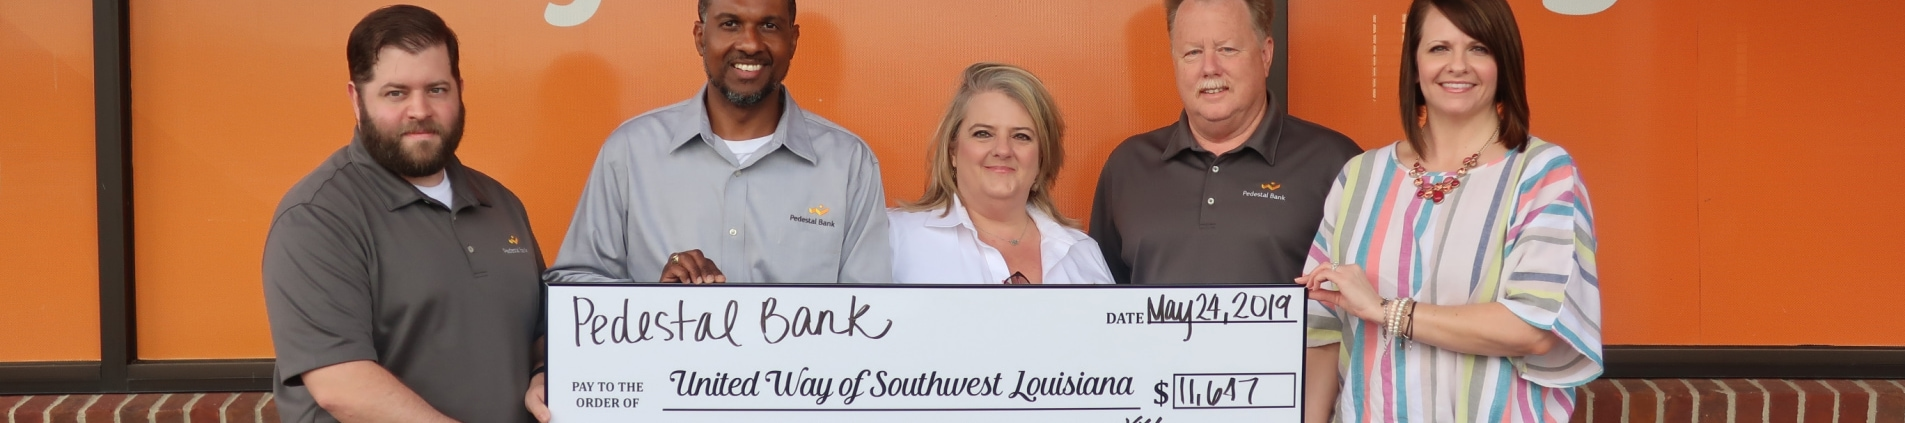 Pedestal Bank donates to United Way of SWLA